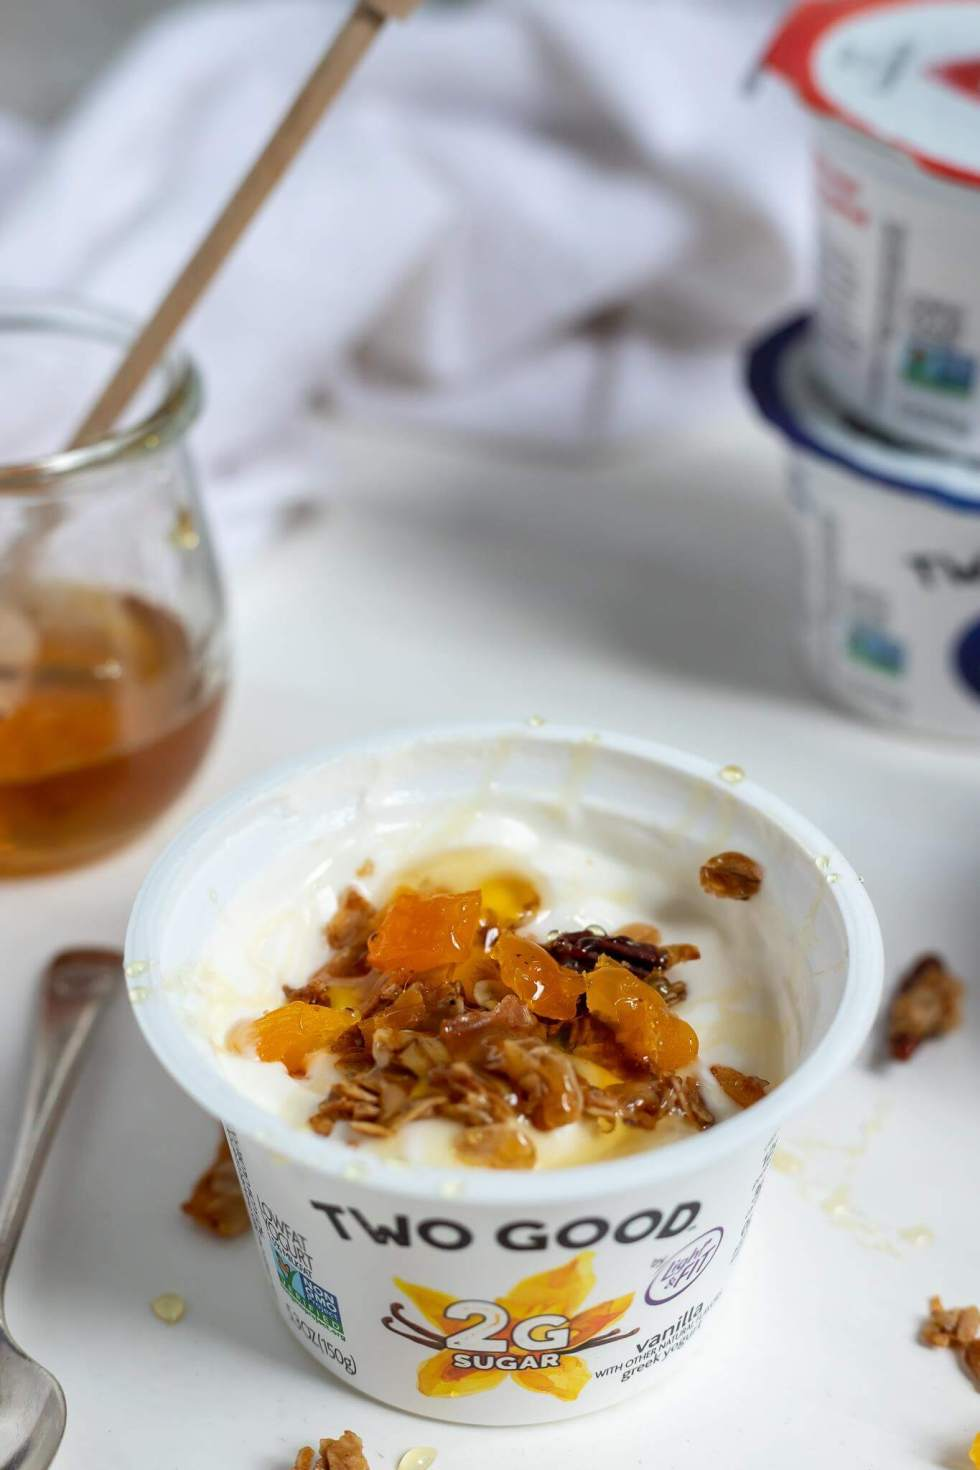 two good yogurt cup topped with homemade granola and honey